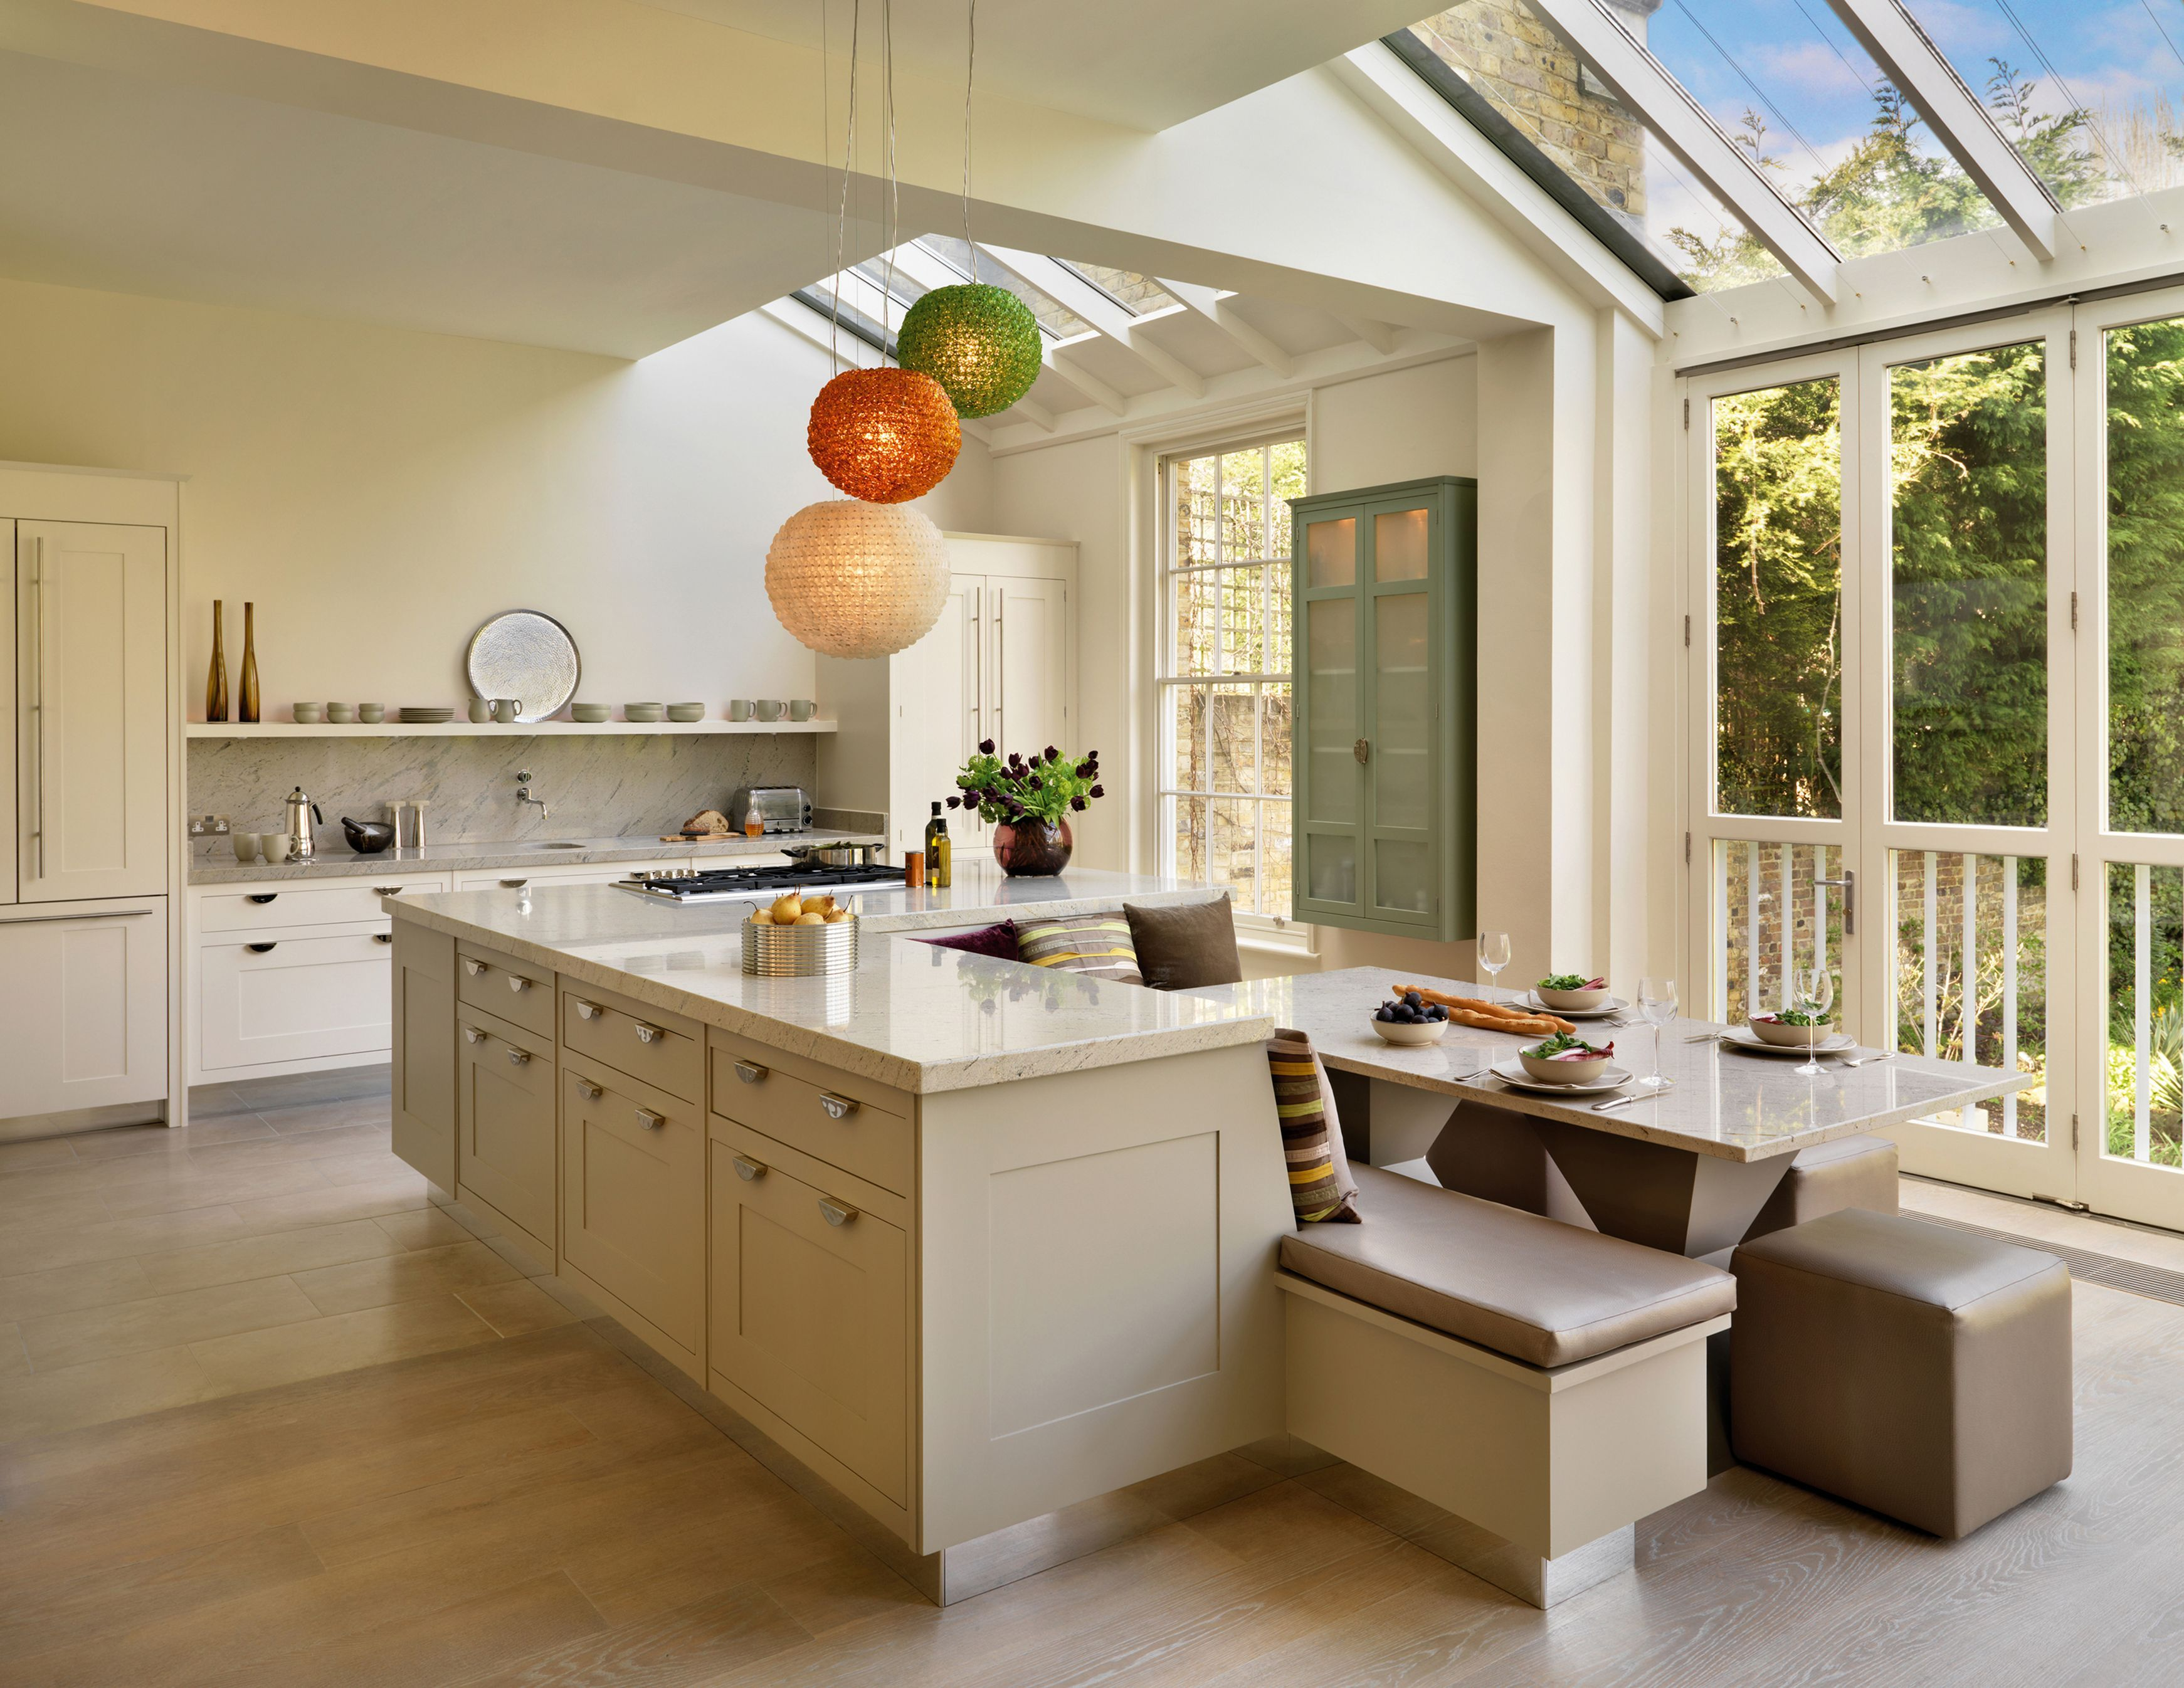 10 extraordinary kitchen ideas for your cozy home modern kitchen island large kitchen layouts on kitchen layout ideas with island id=44109